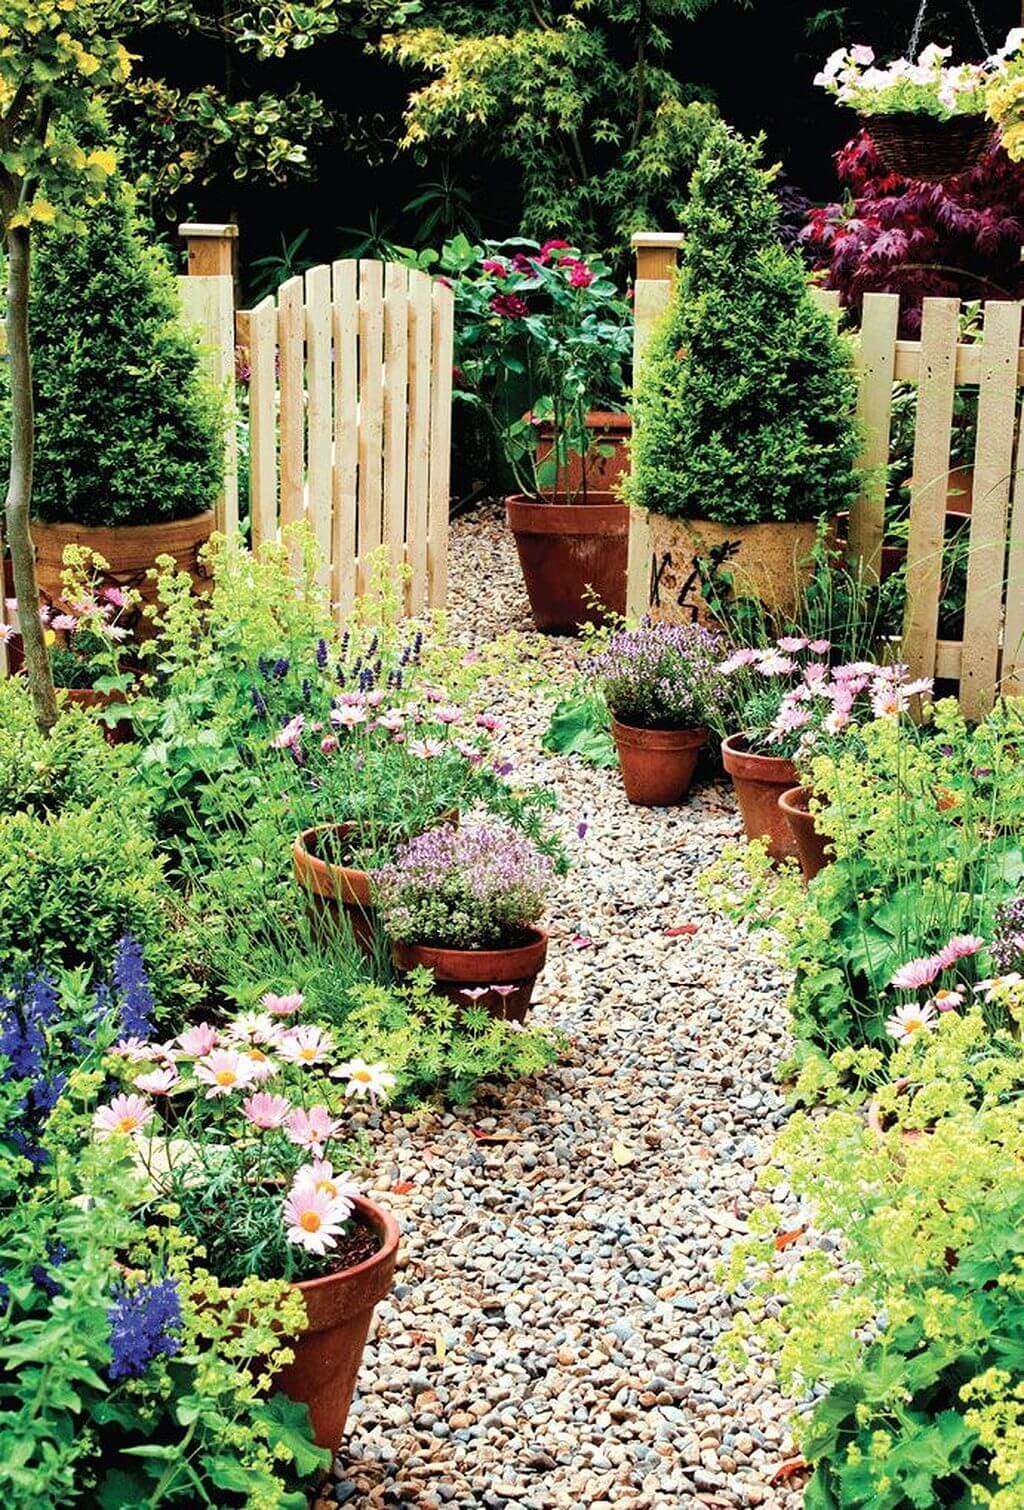 Meandering Path with Potted Flowers